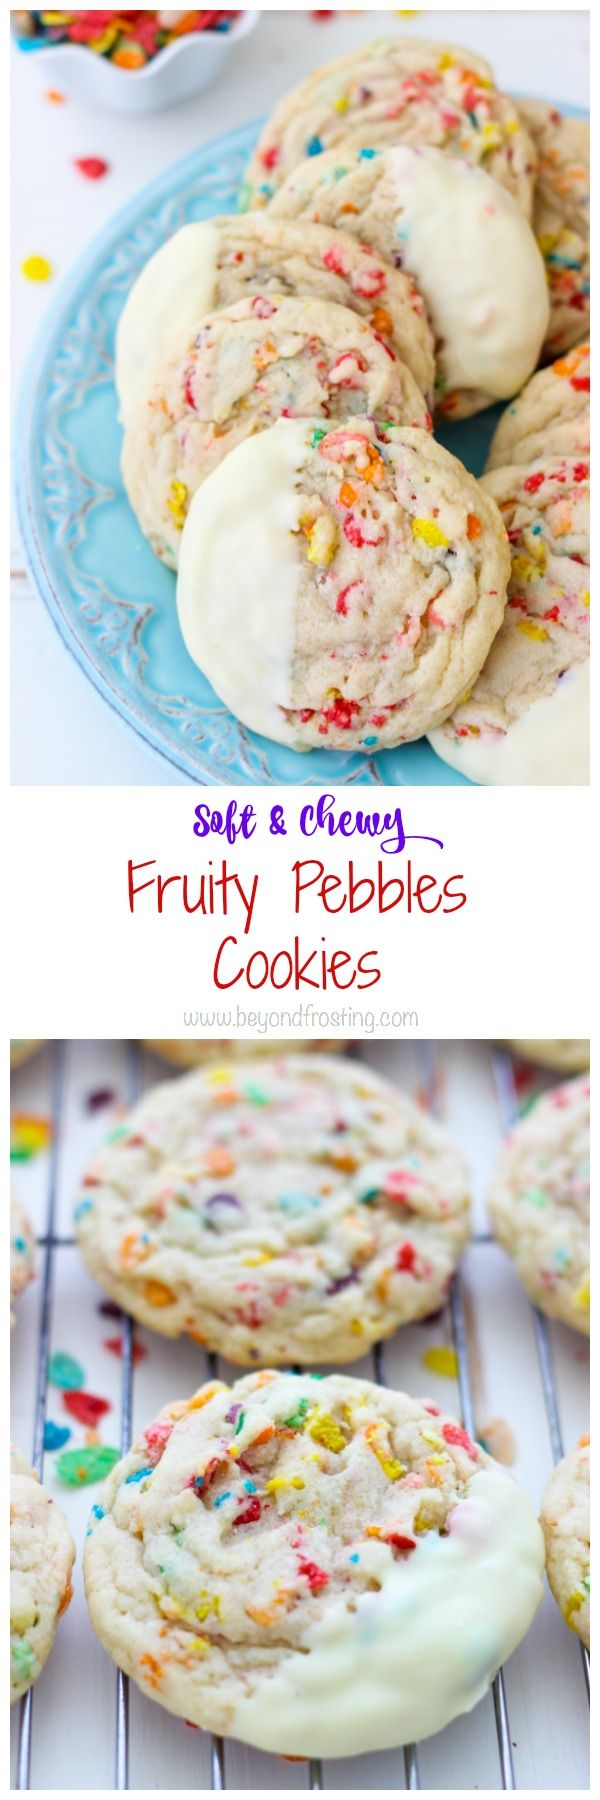 These super fun Fruity Pebbles Cookies are a soft-baked sugar cookie stuffed with fruity pebbles and dipped in white chocolate.